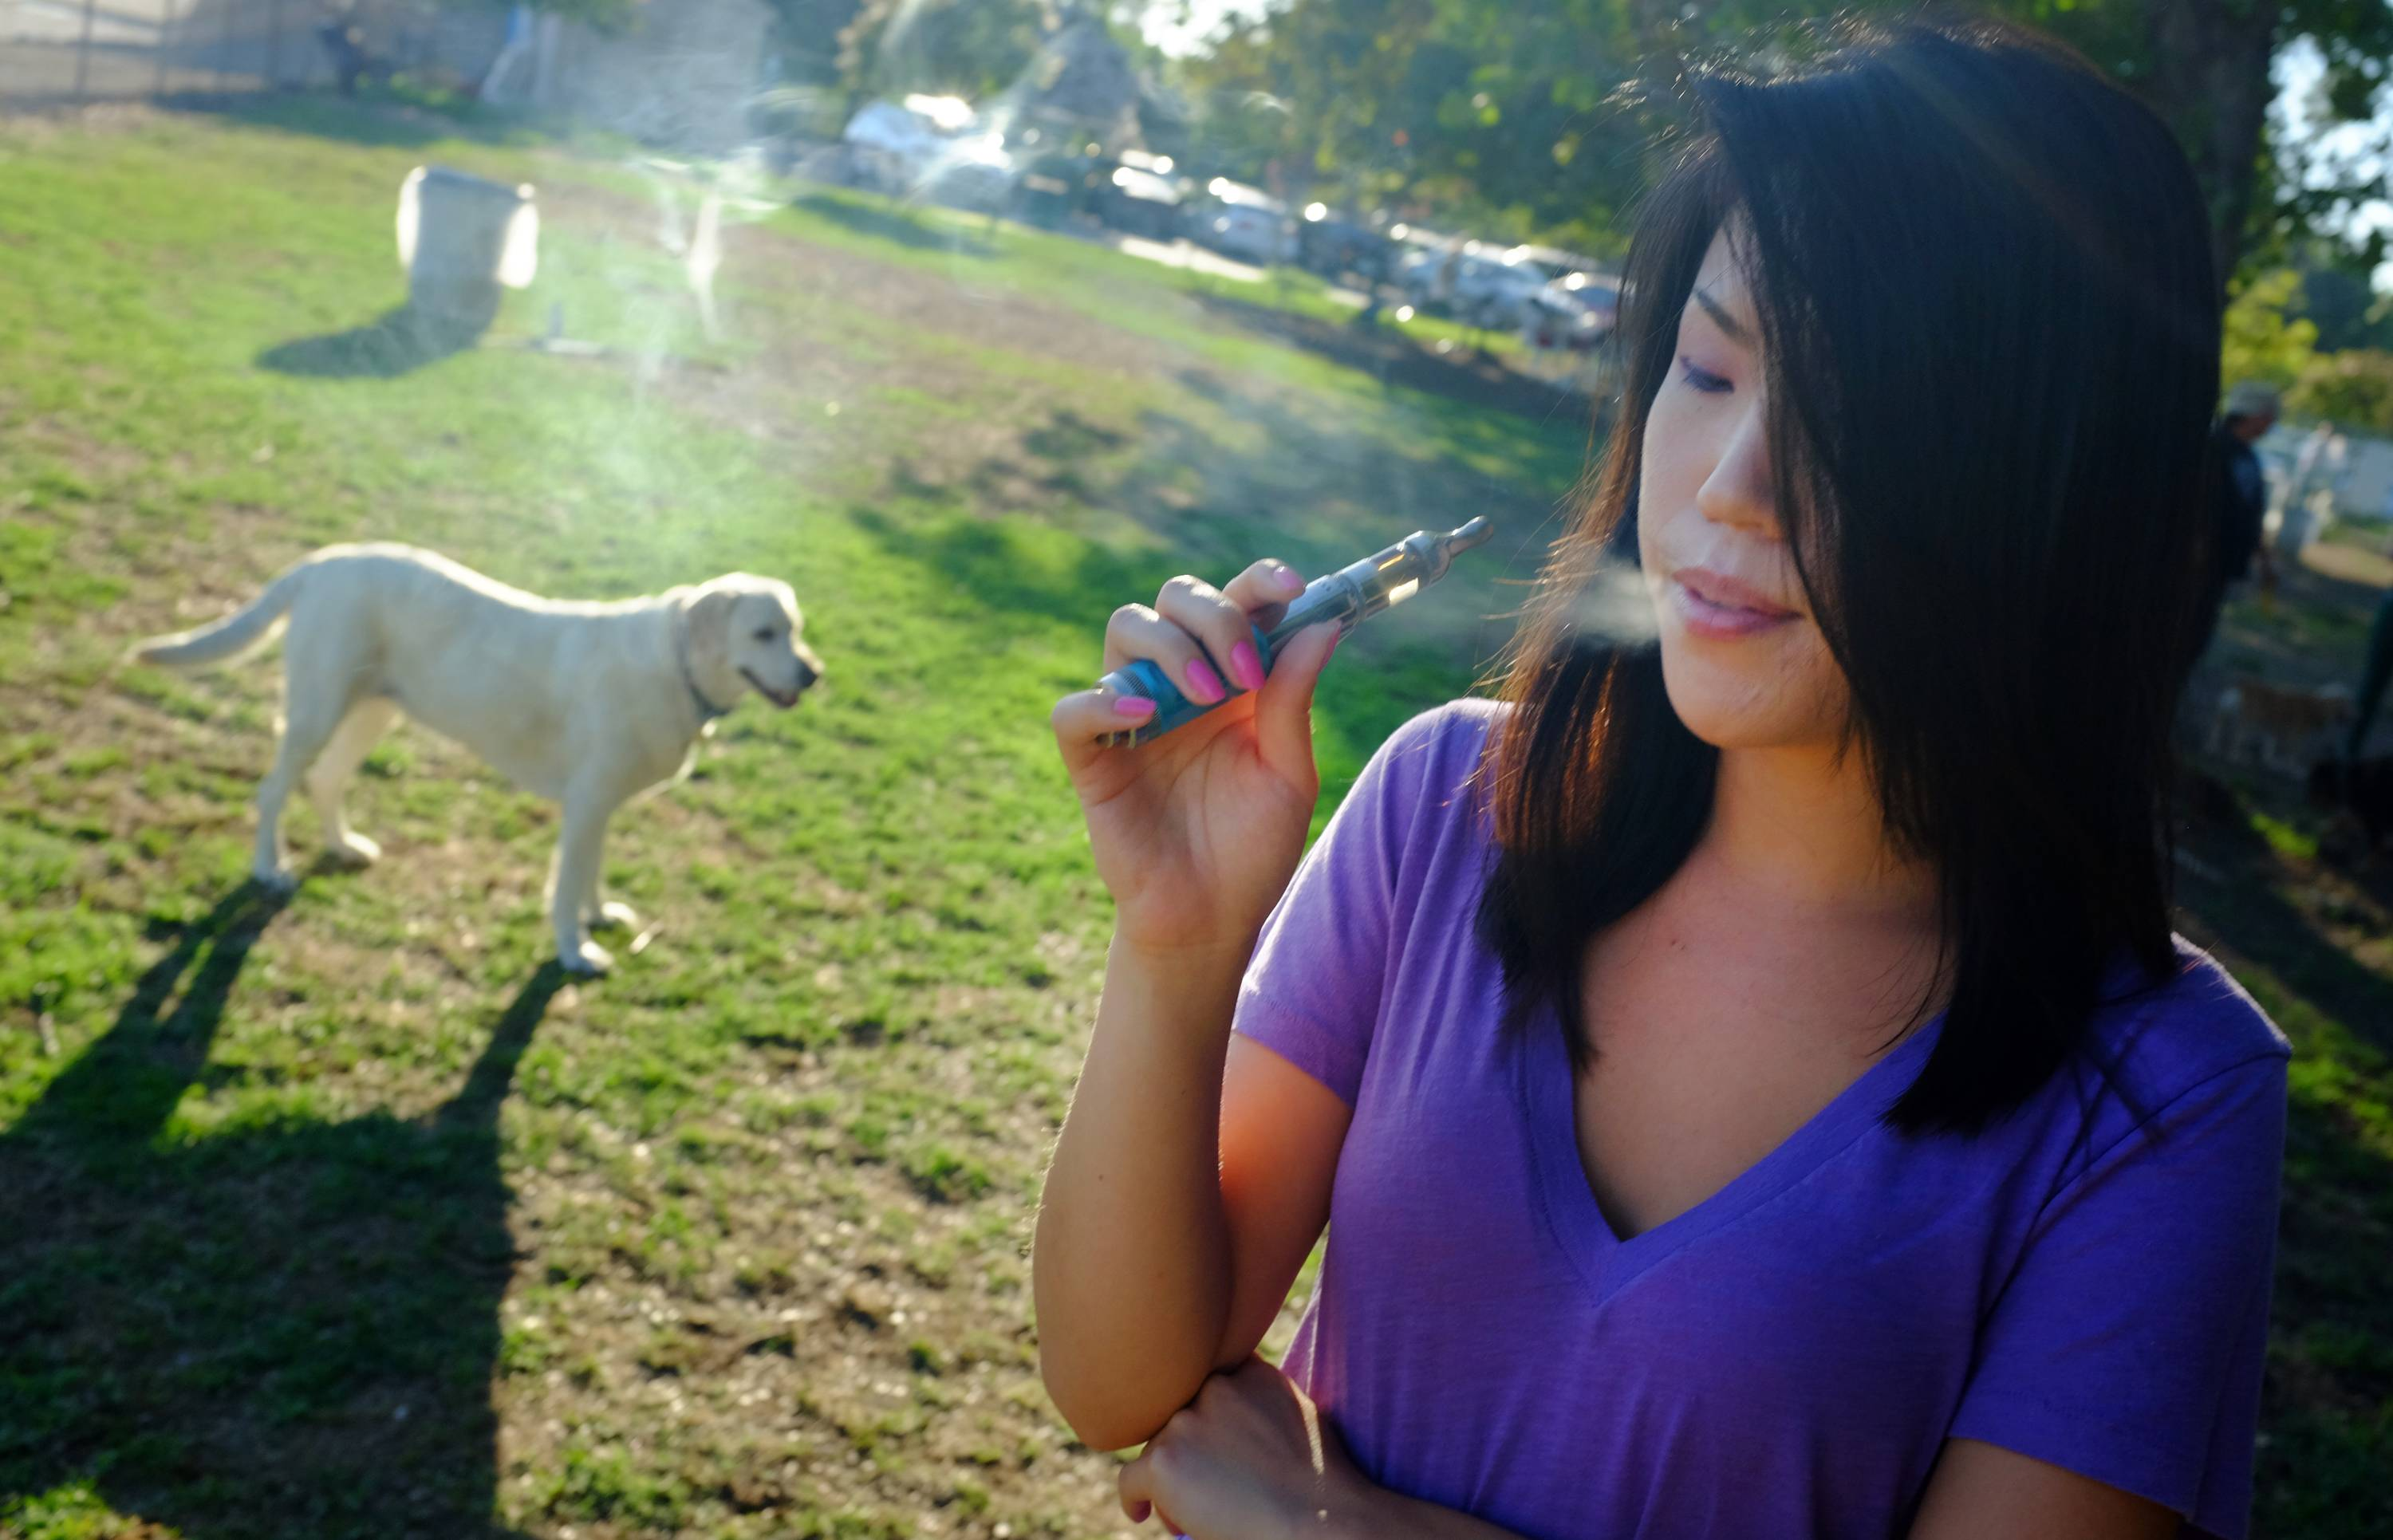 Recent surges in the use of e-cigarettes and chewing tobacco raised questions about those products on pets. The greatest danger is the trash, if dogs find discarded tobacco or nicotine cartridges from e-cigarettes.